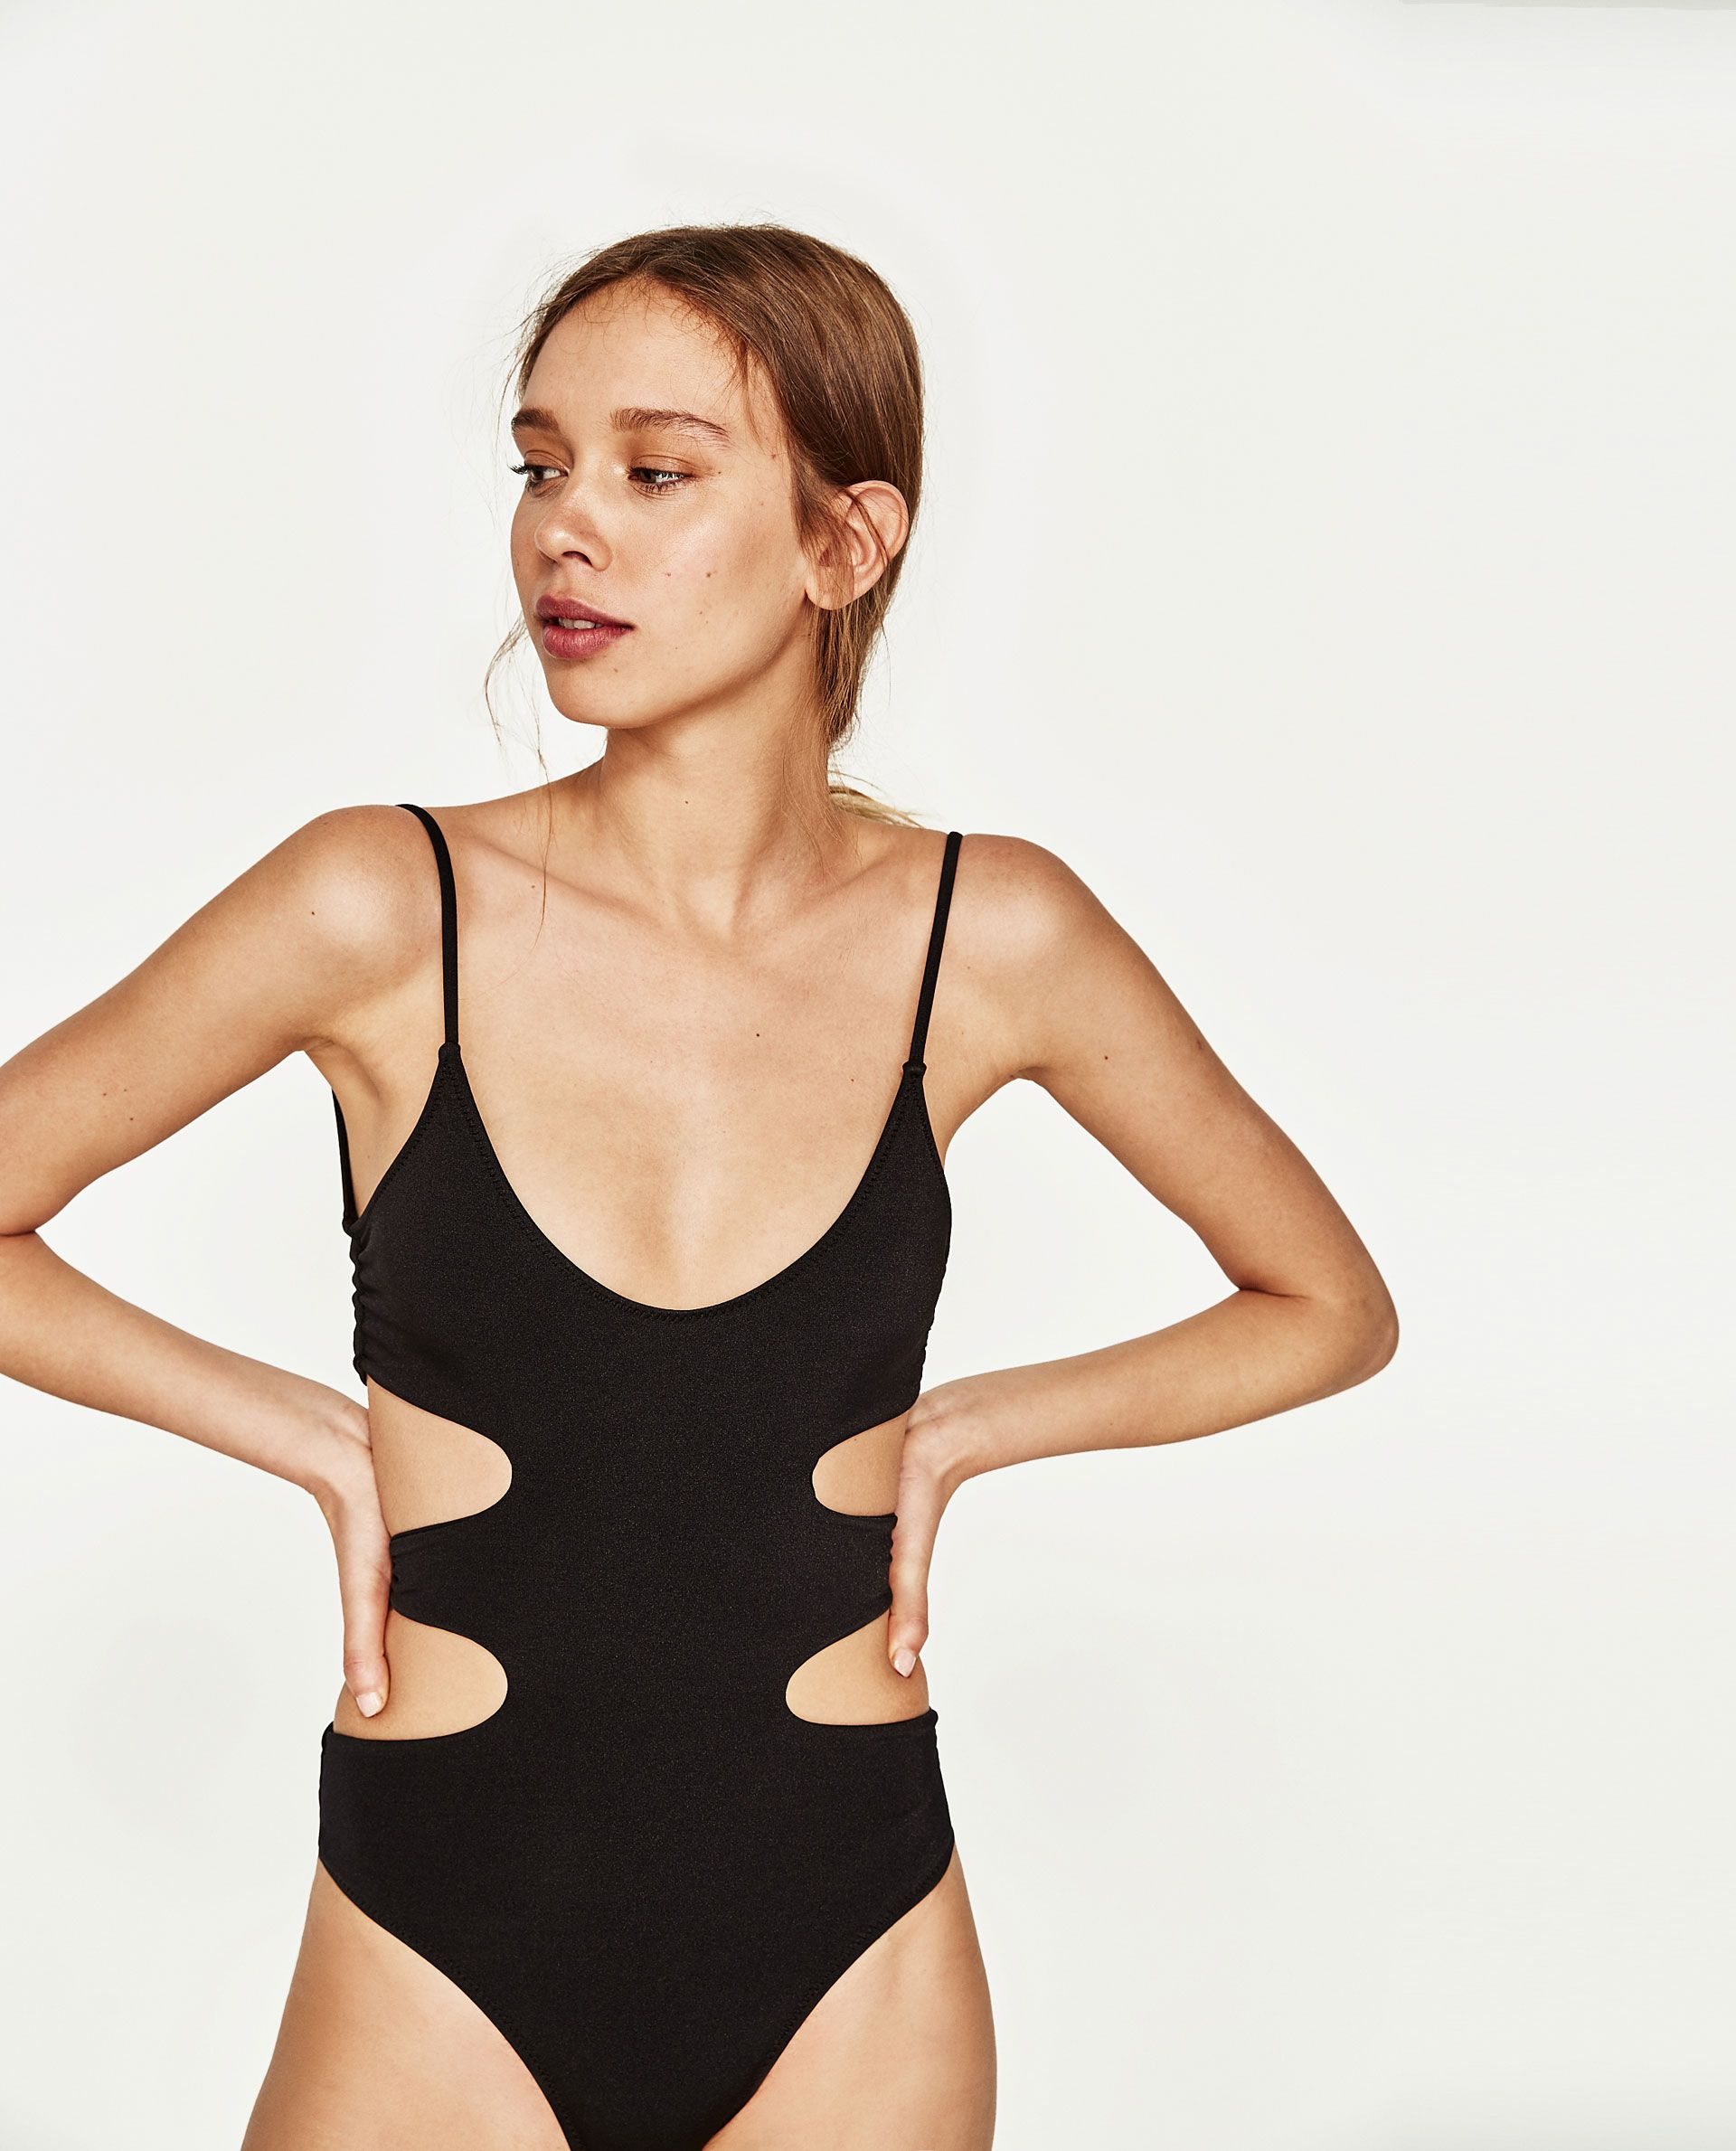 d09345bf5d5 Image 1 of SWIMSUIT WITH SIDE OPENINGS from Zara   Clothes horse in ...